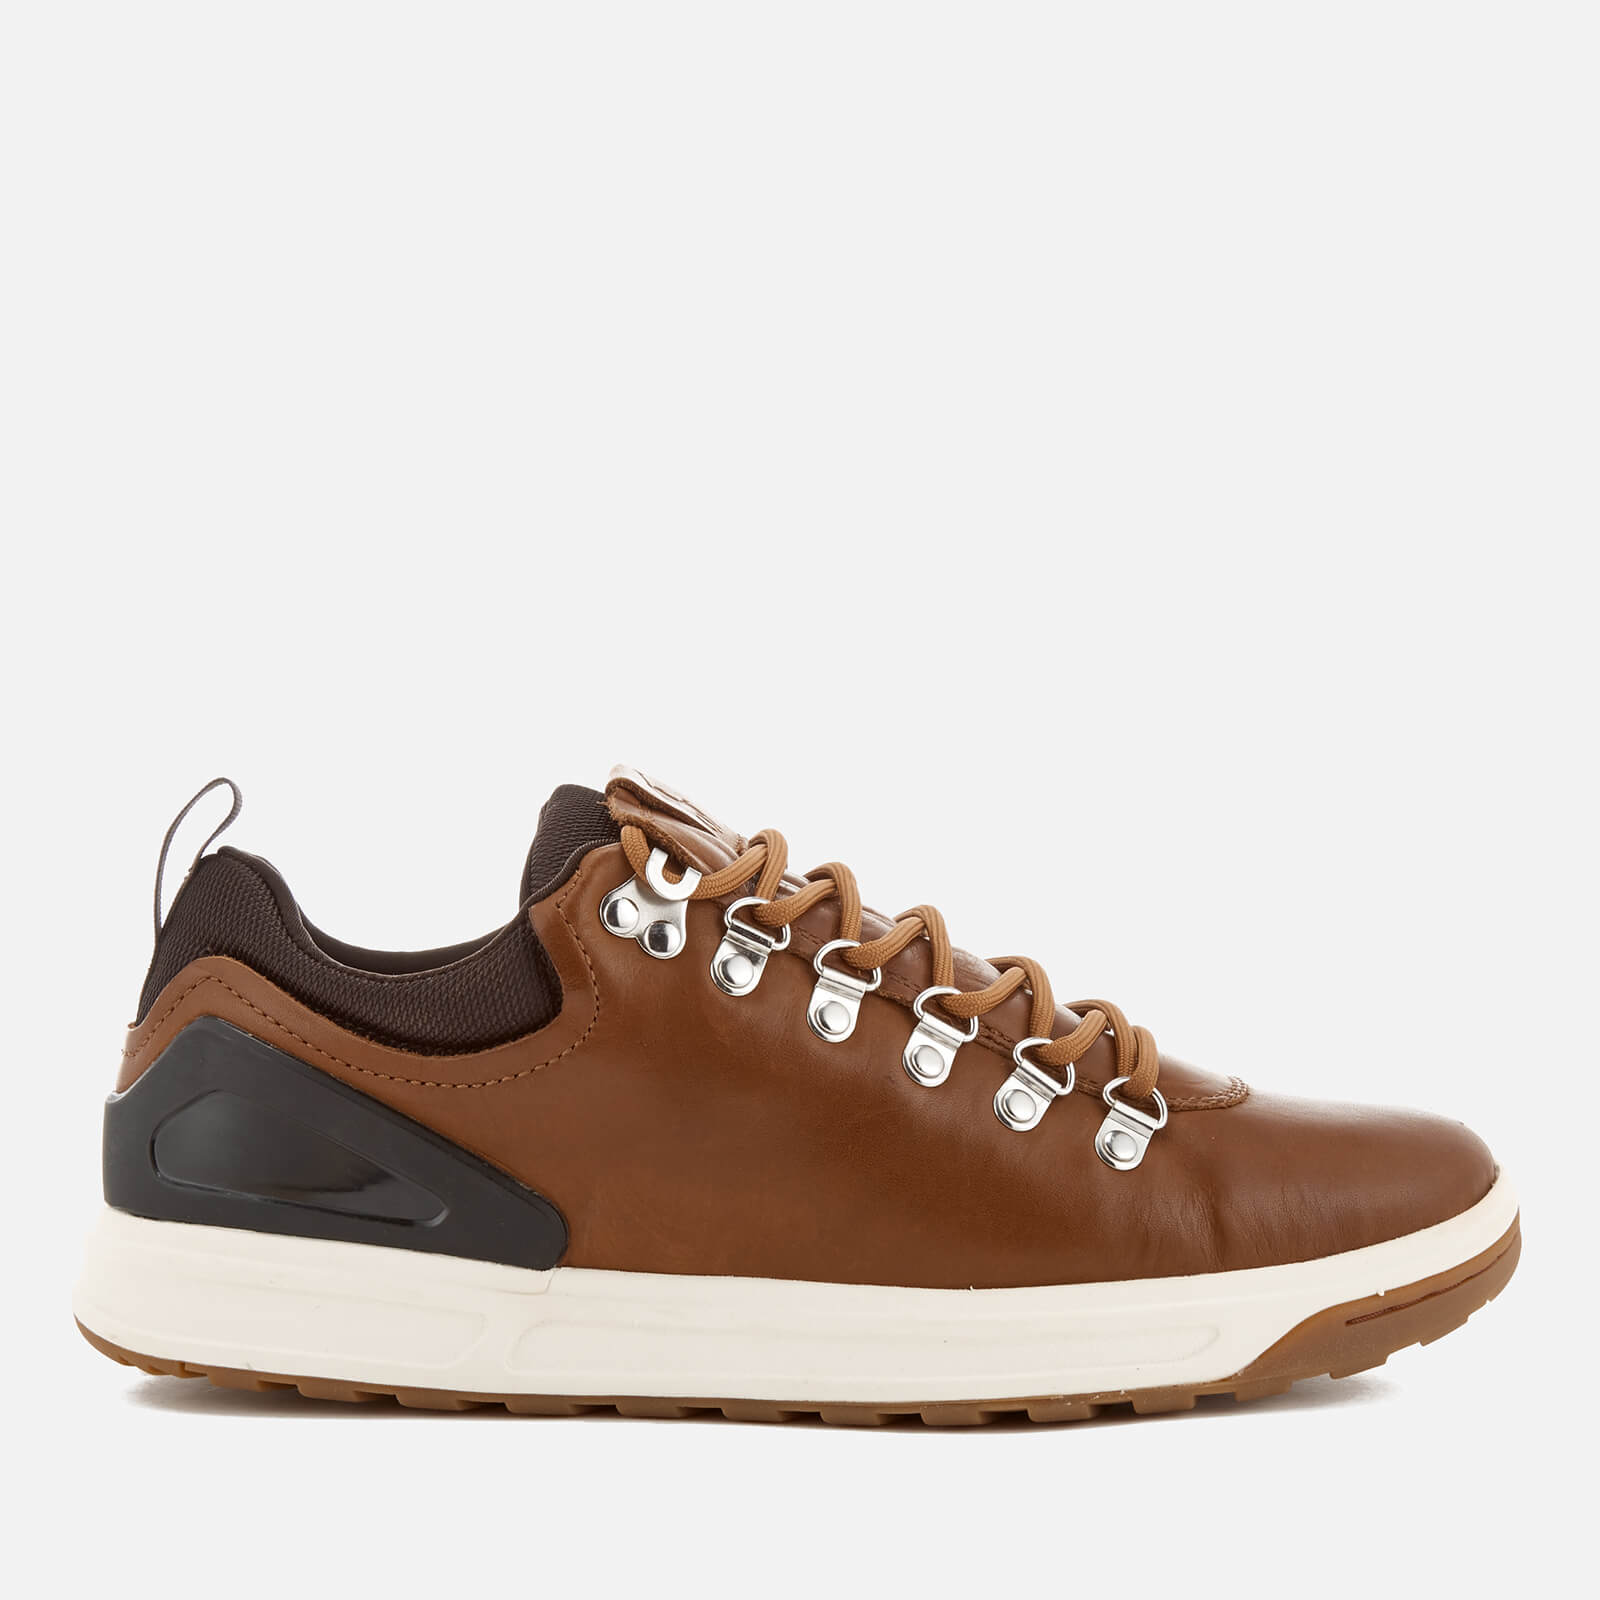 3b68fc0ce63 Polo Ralph Lauren Men s Adventure 100 Leather Hiking Trainers - Deep Saddle  Tan - Free UK Delivery over £50